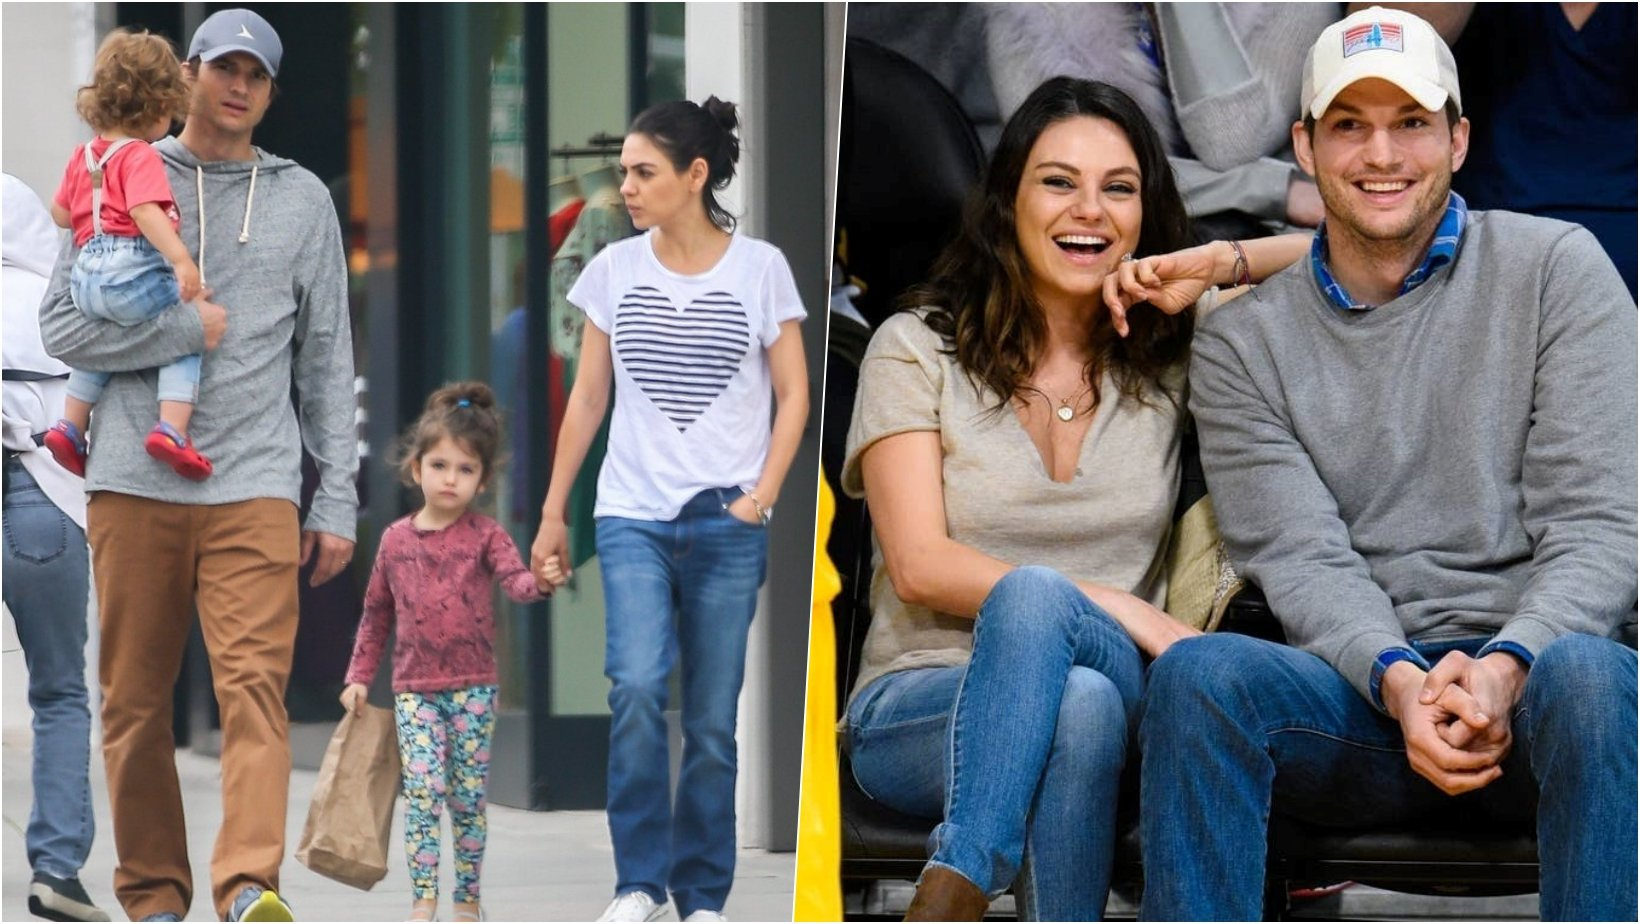 6 facebook cover 26.jpg?resize=412,232 - Mila Kunis Reveals That Ashton Kutcher Disagreed With Her Parenting When She Encouraged Their Daughter To Push Another Kid